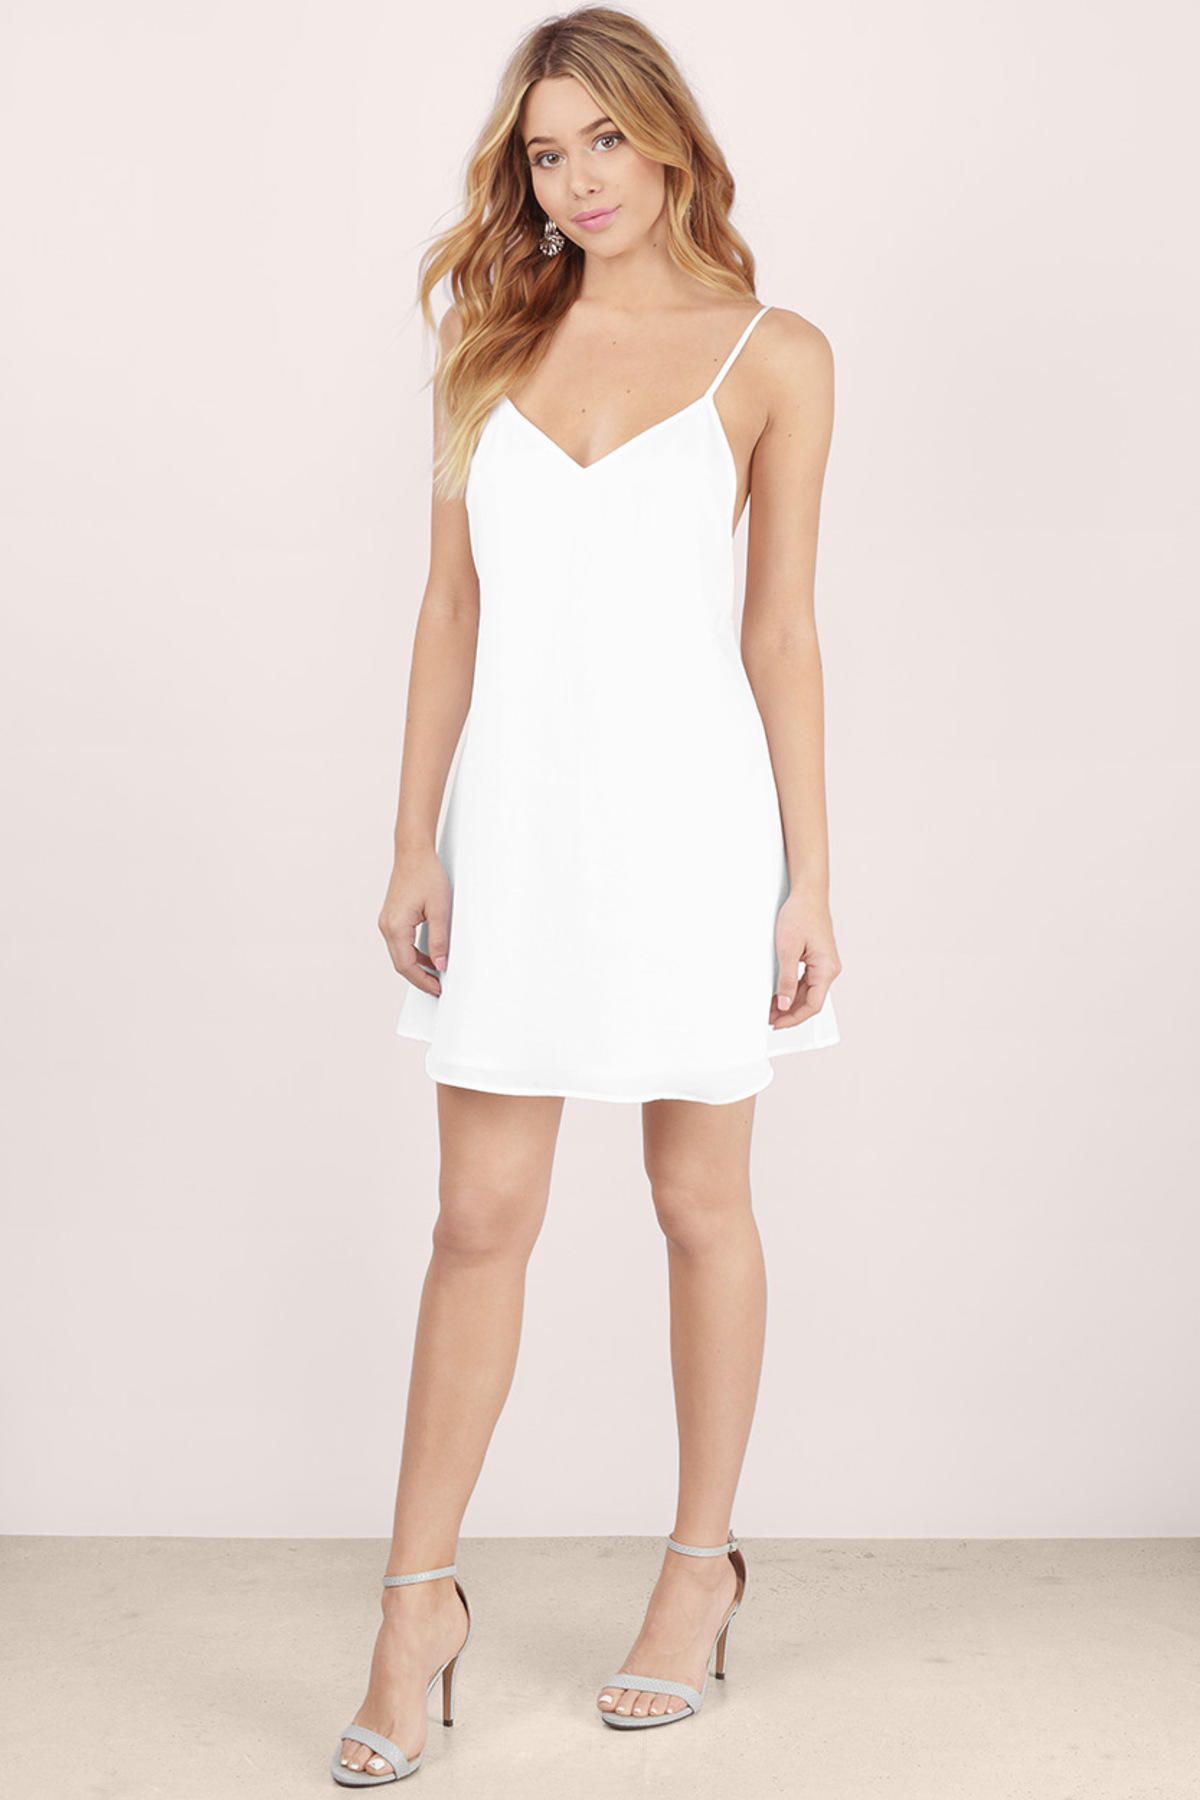 white-renee-open-back-slip-dress@2x.jpg